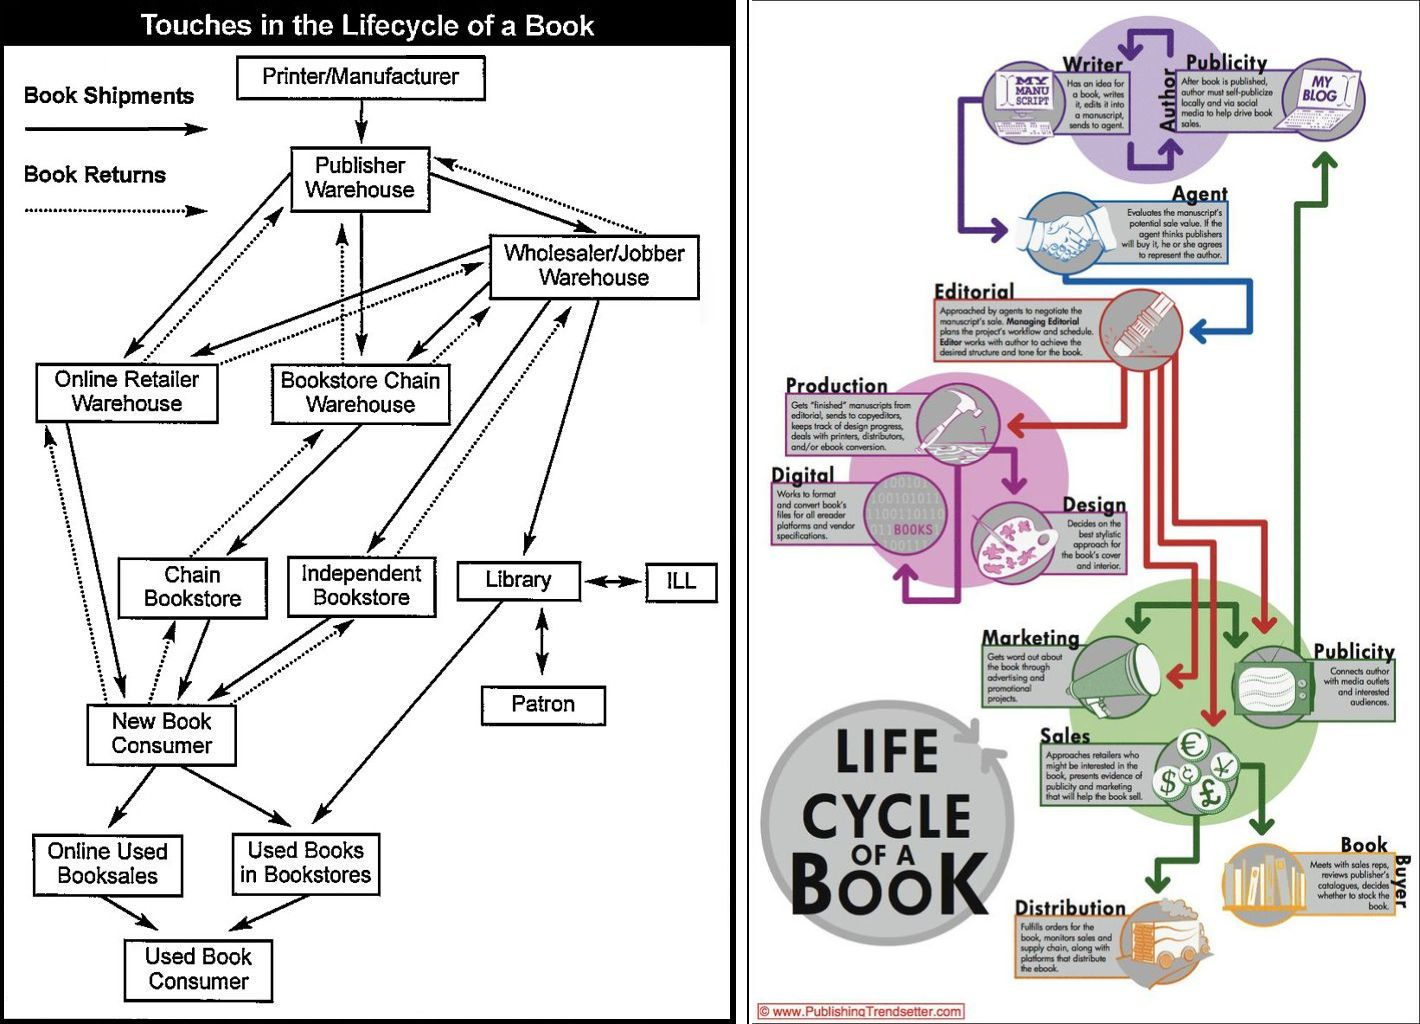 Thad mcilroy future of publishing reengineering the book lifecycletwocharts ccuart Images